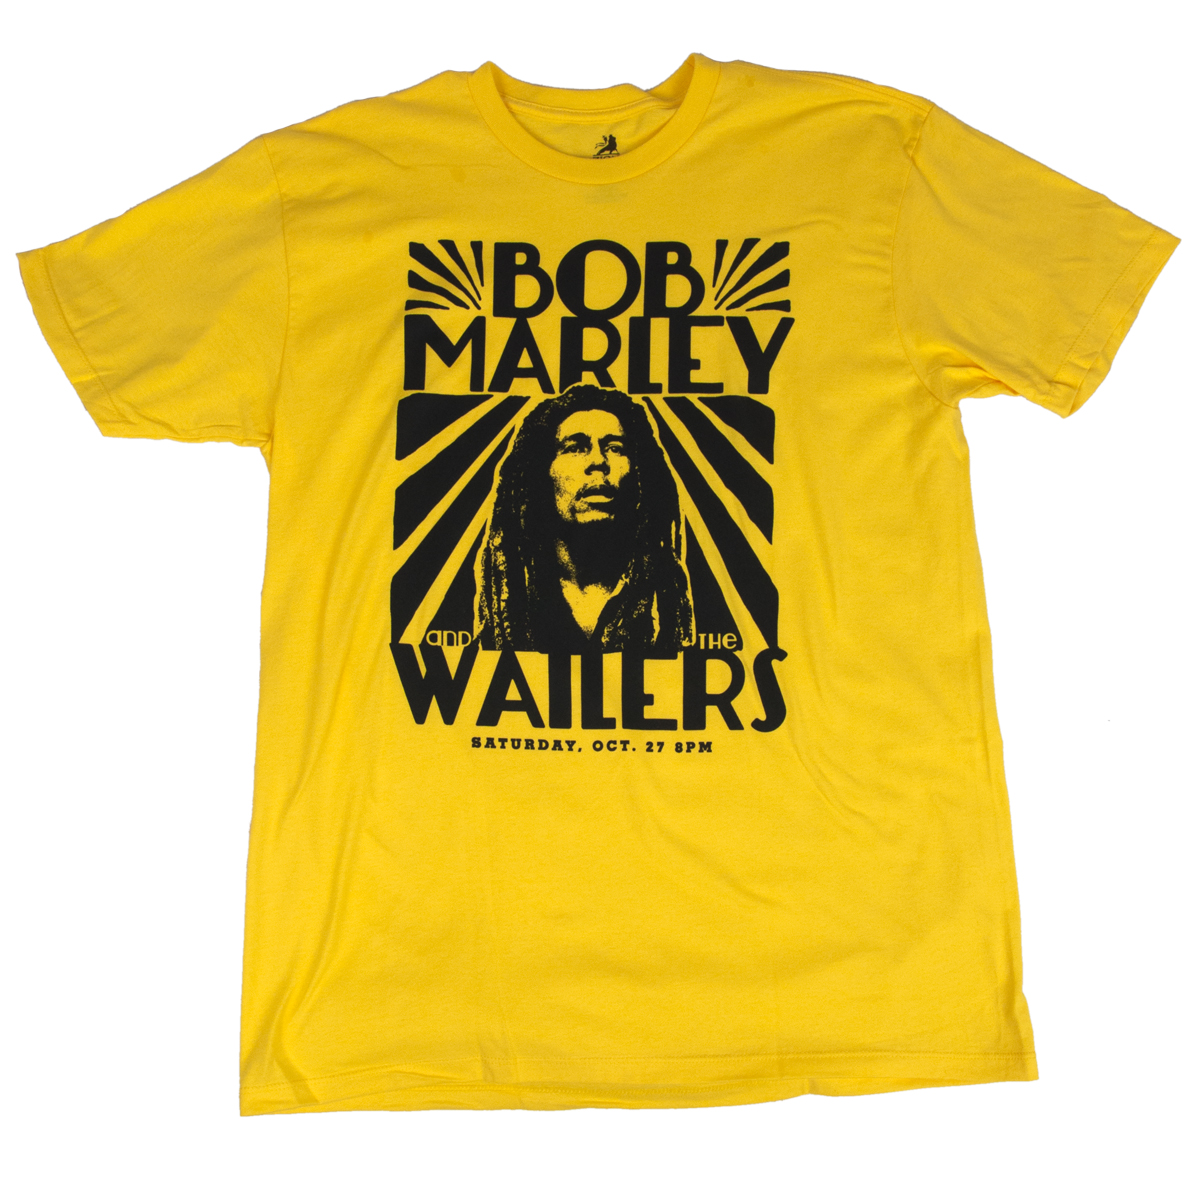 Bob Marley T Shirts Tee 1 Tshirt Kaos Raglan And The Wailers Vintage Yellow Shirt Mens